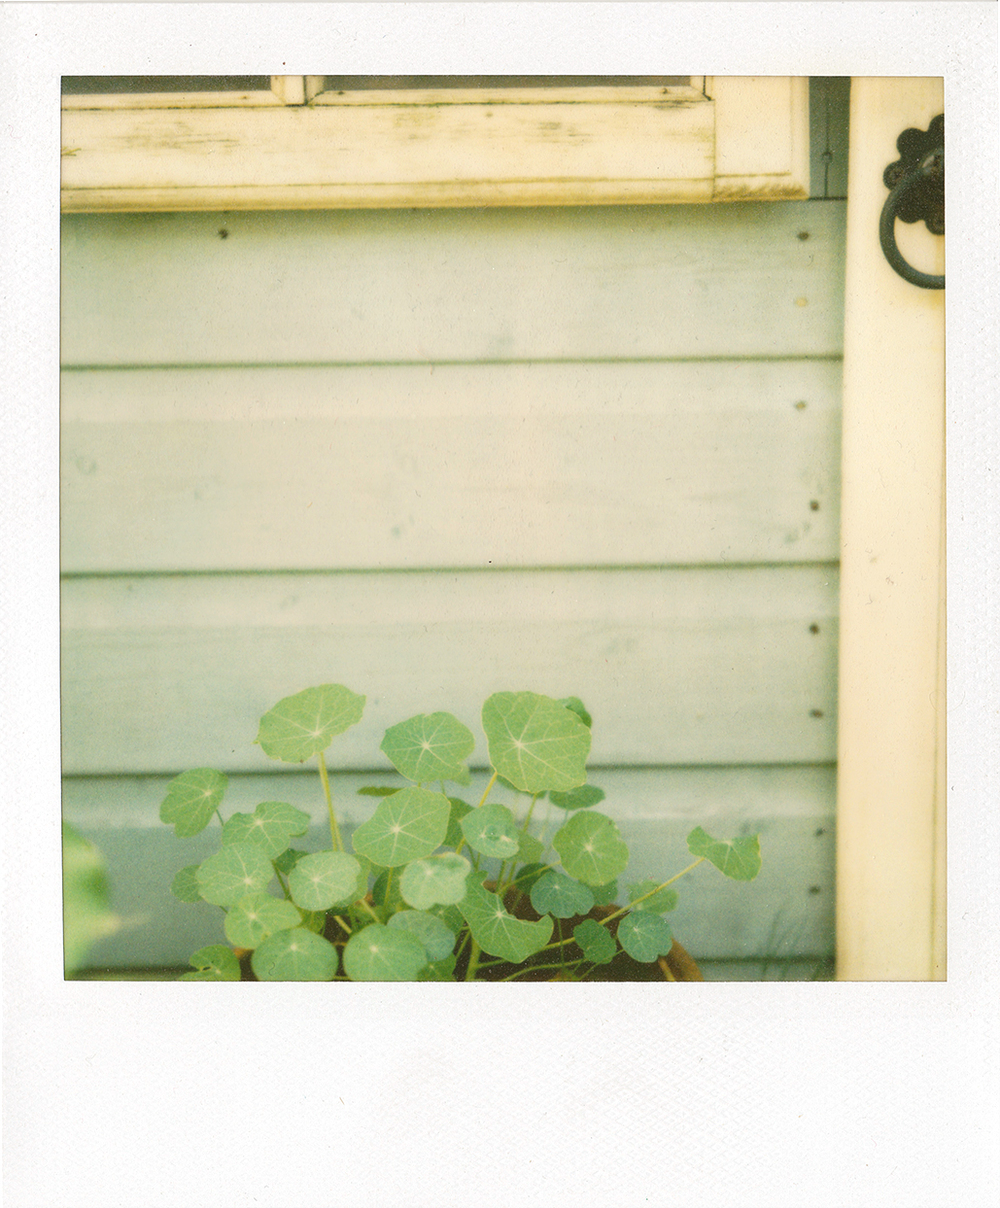 polaroid 600 film with pack filter.